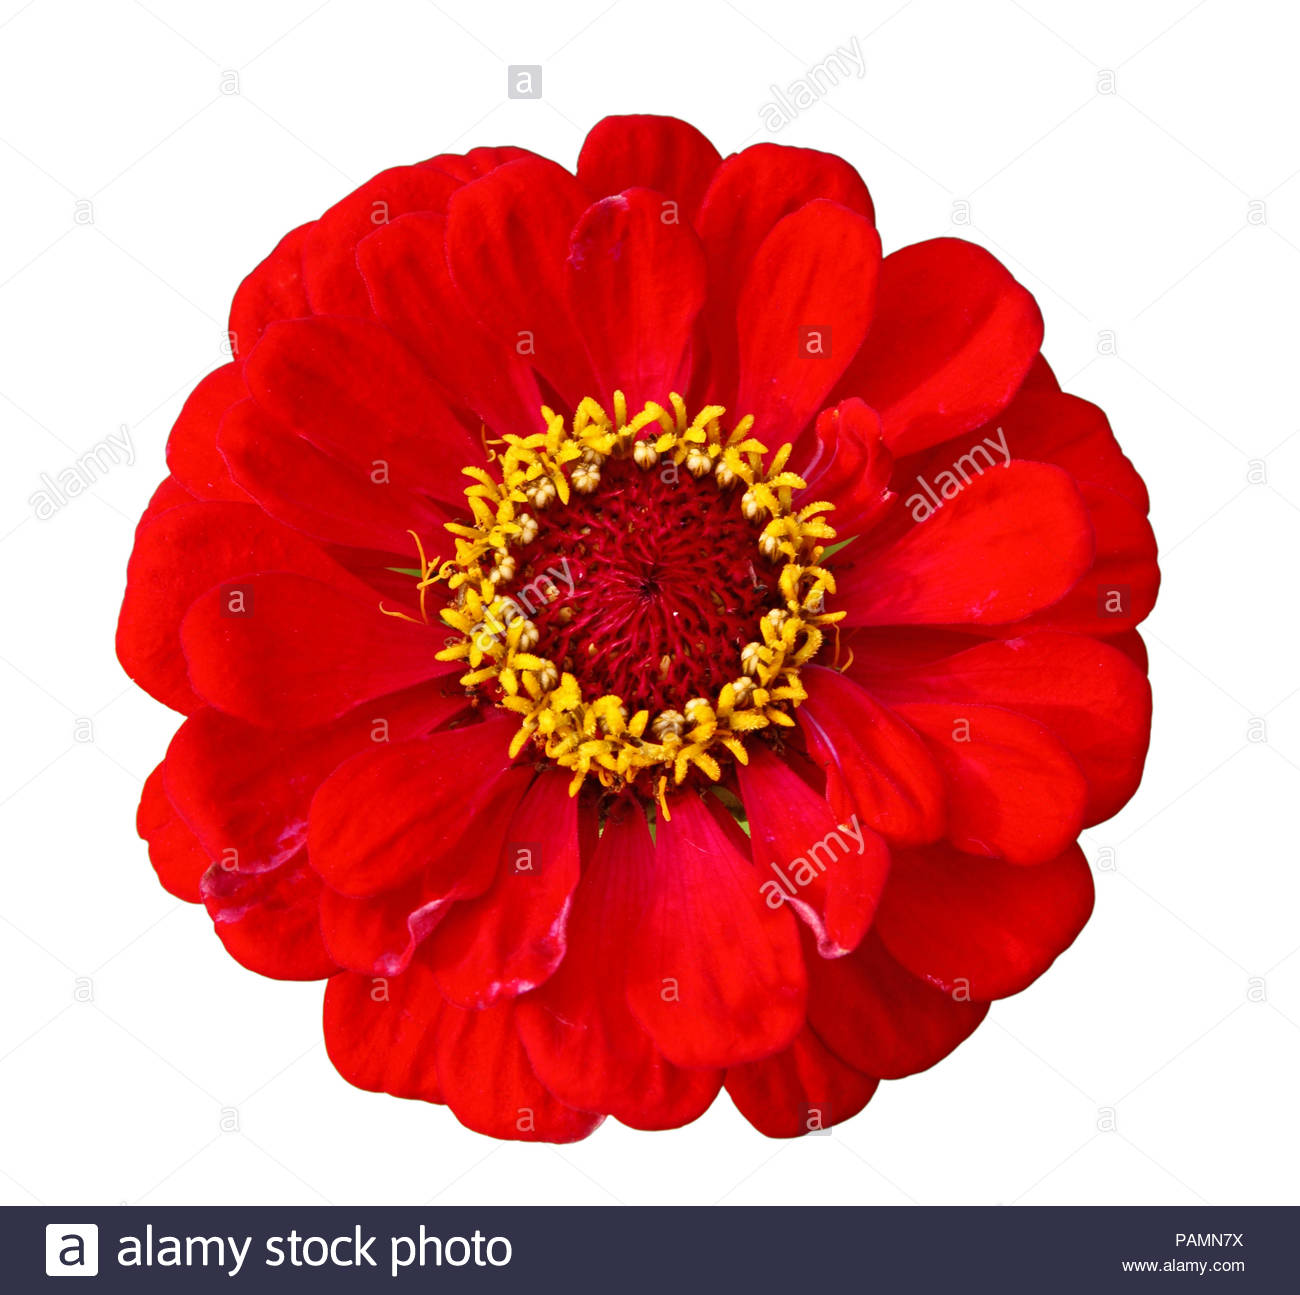 Colorful red zinnia flower isolated on white background closeup 1300x1295